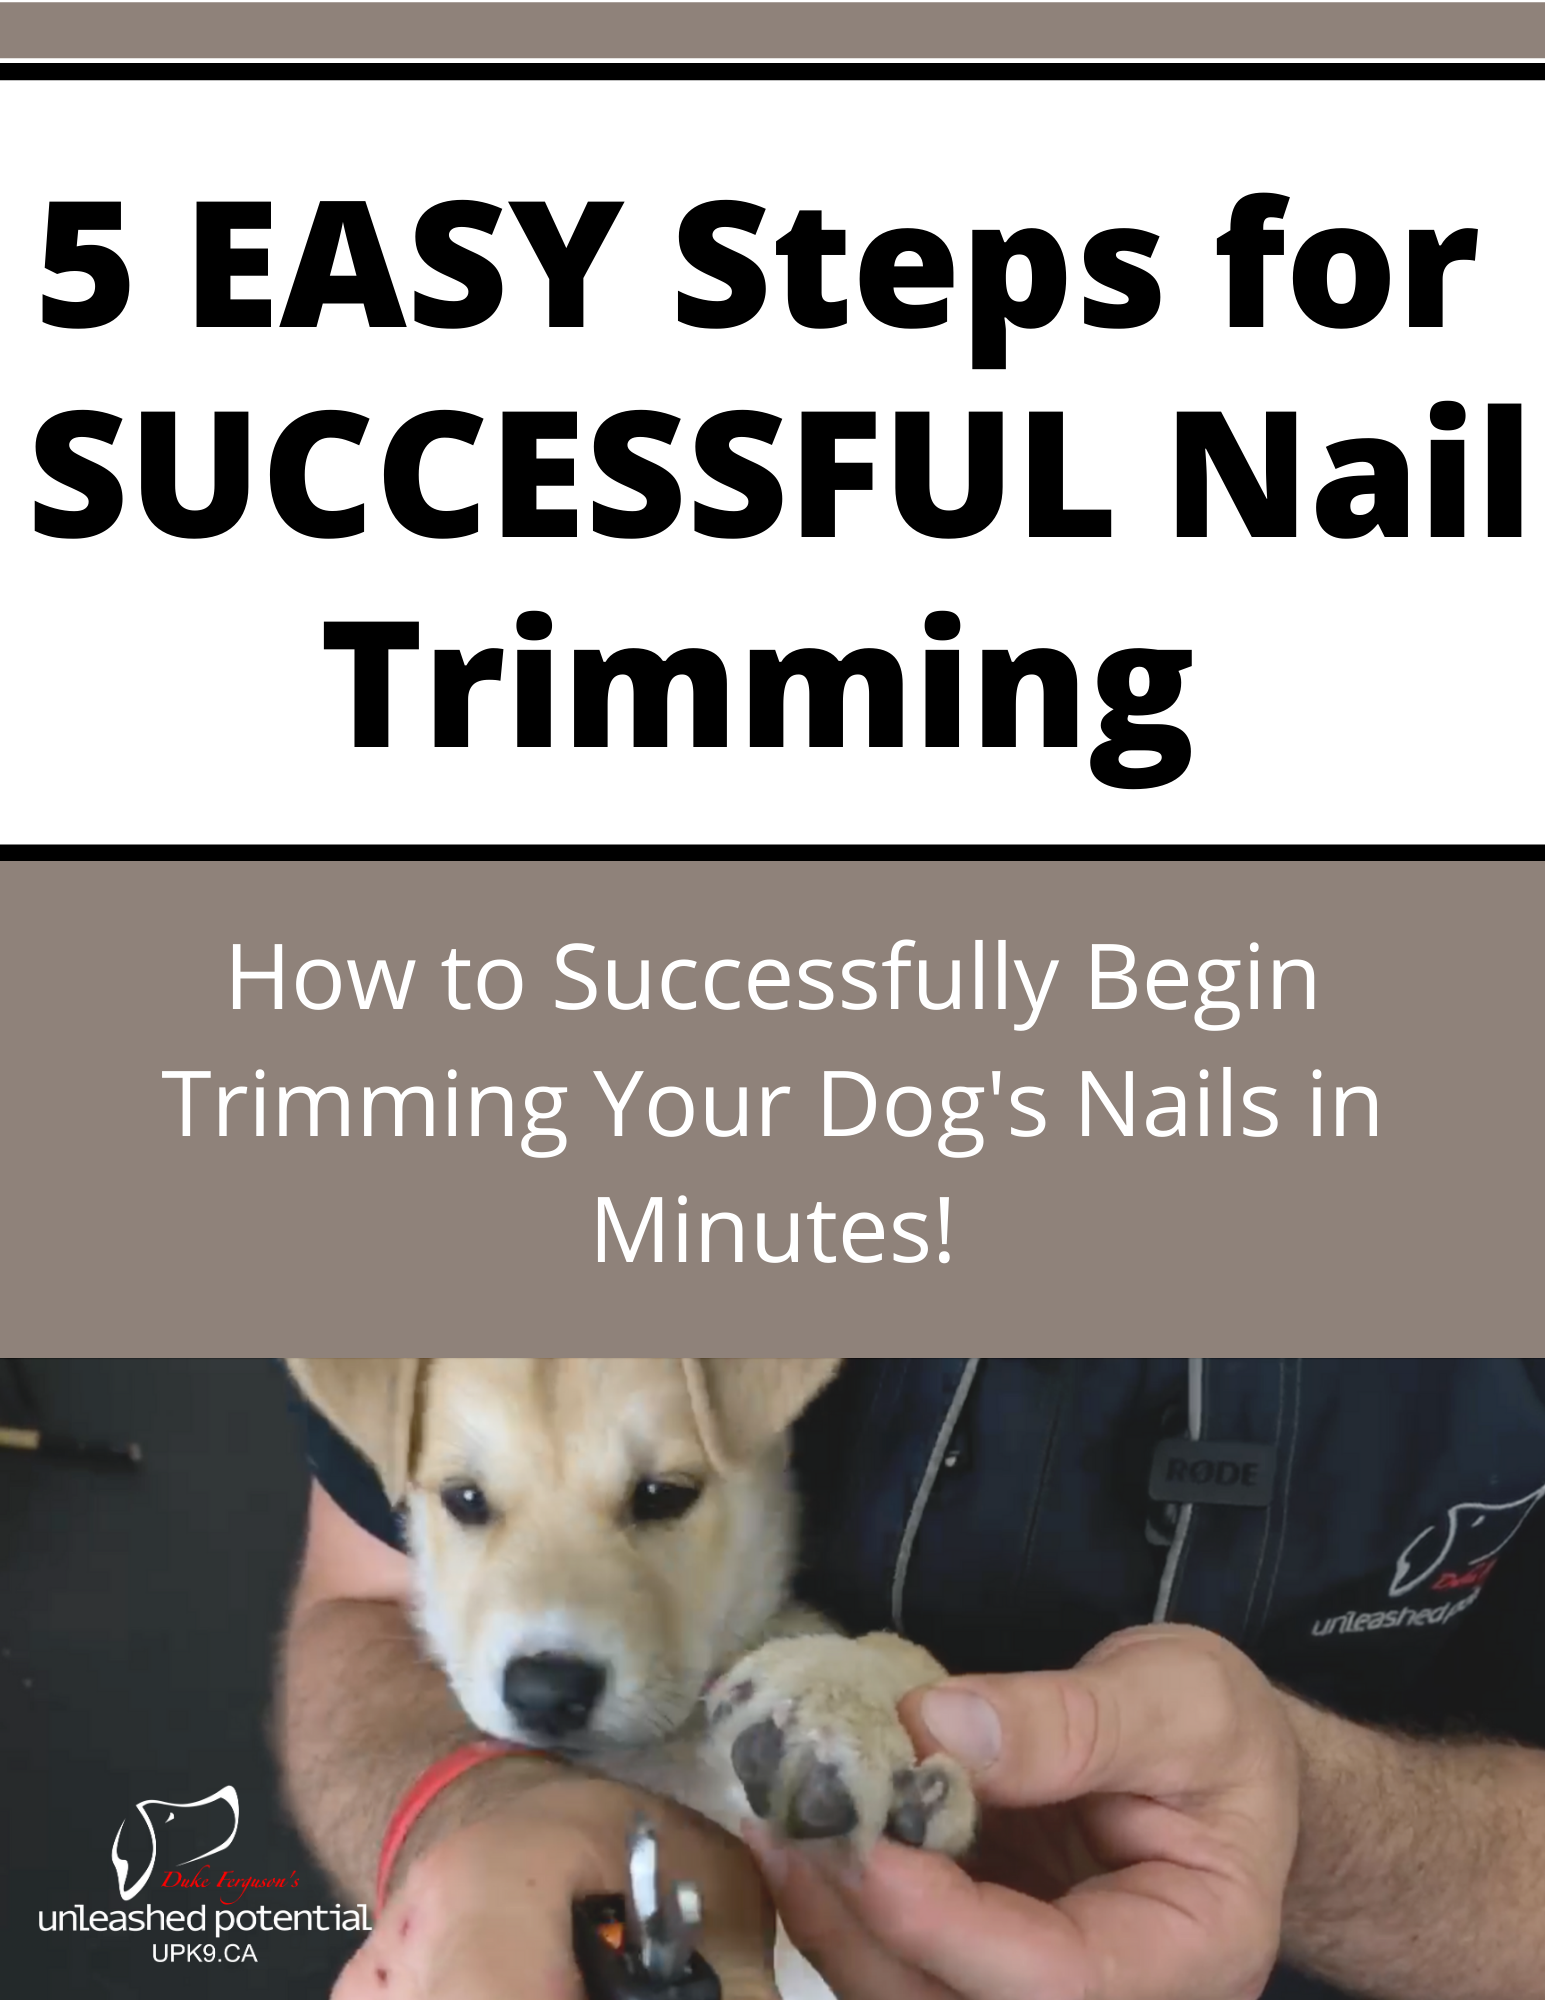 Dog nail trimming guide